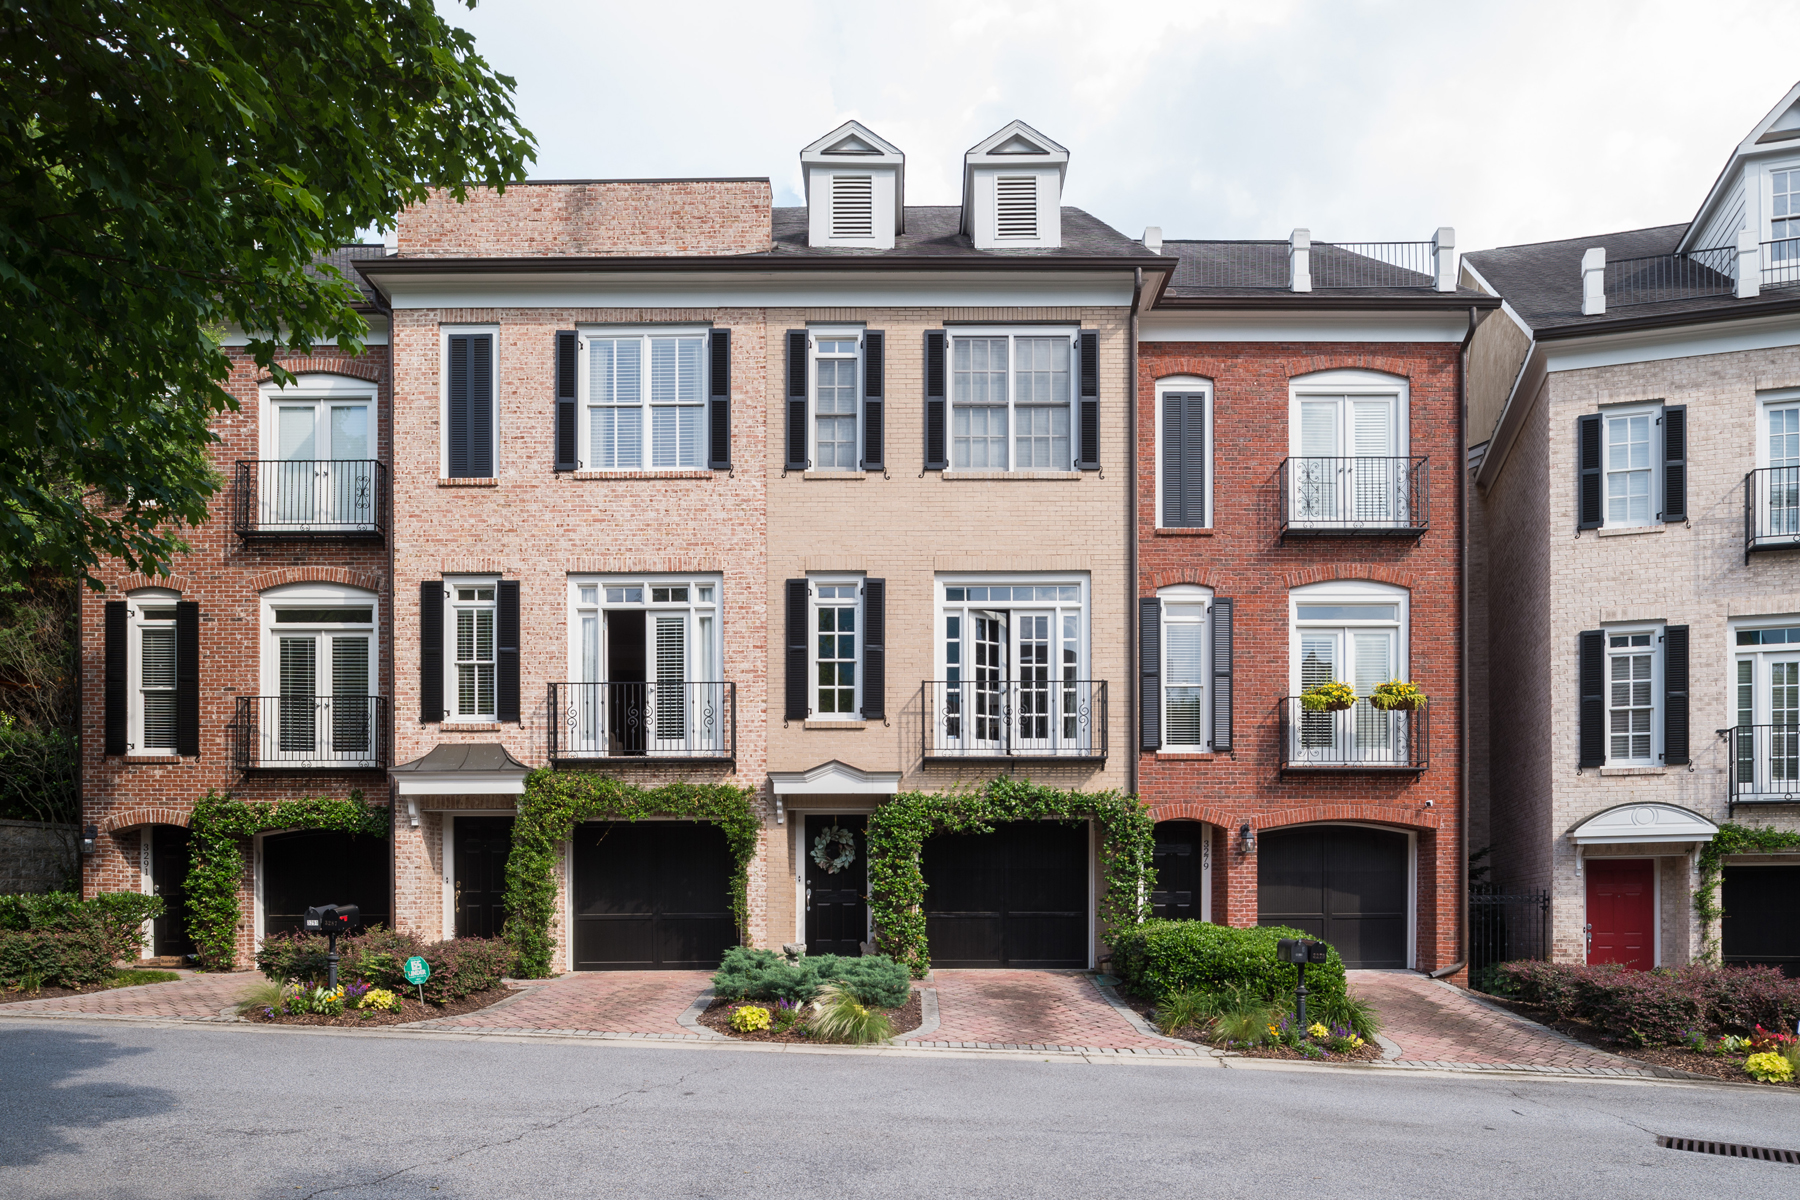 Townhouse for Sale at Gorgeous Designer-Renovated Townhome In The Heart Of Buckhead 3283 Buckhead Forest Mews NE Buckhead Forest, Atlanta, Georgia, 30305 United States